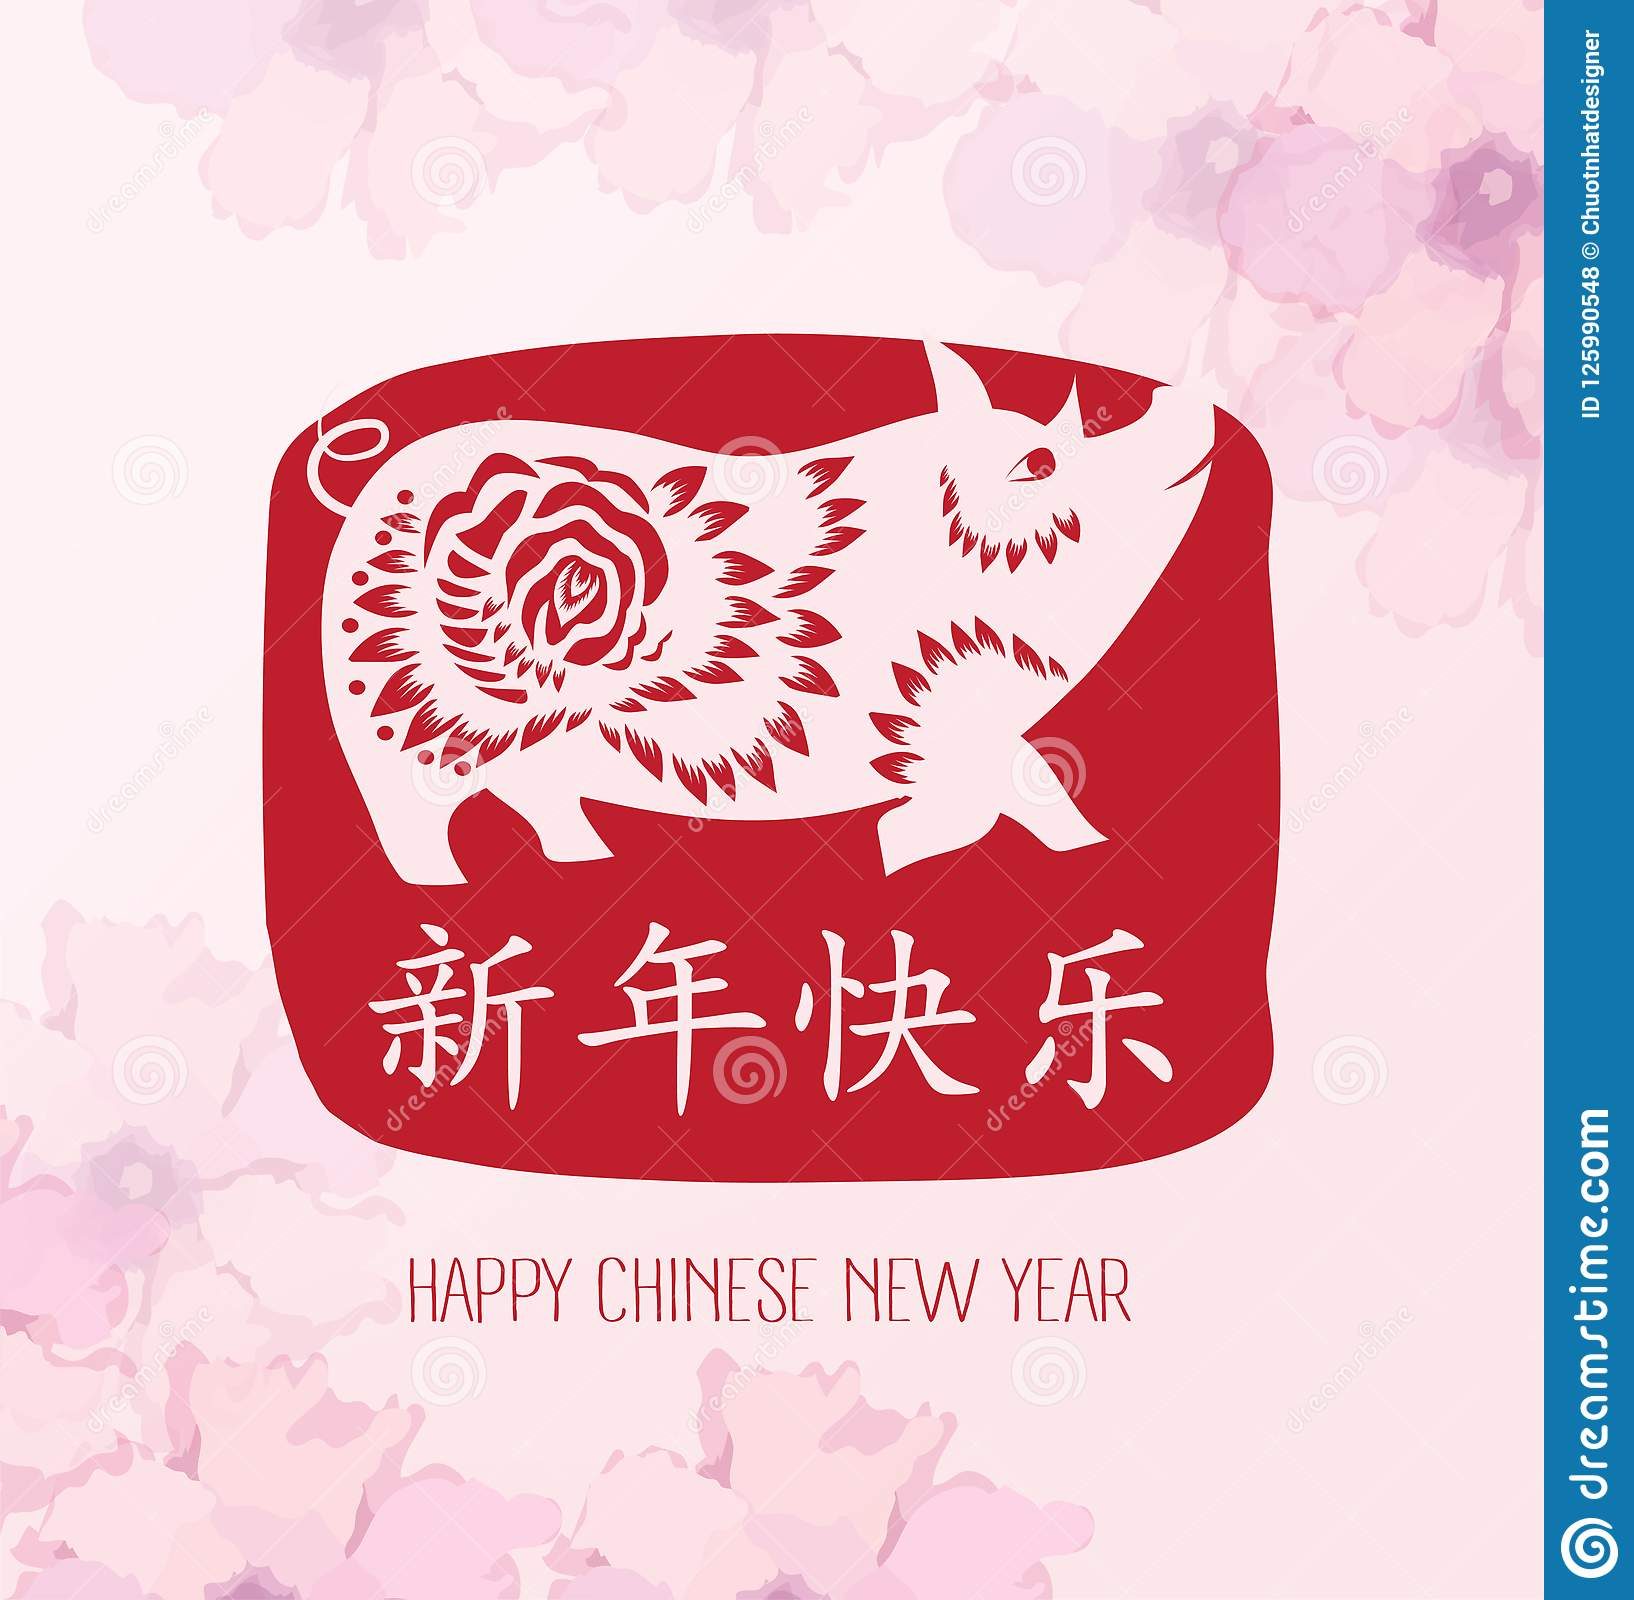 Chinese new year 2019 Stamp background. Chinese characters mean Happy New Year. Year of the pig